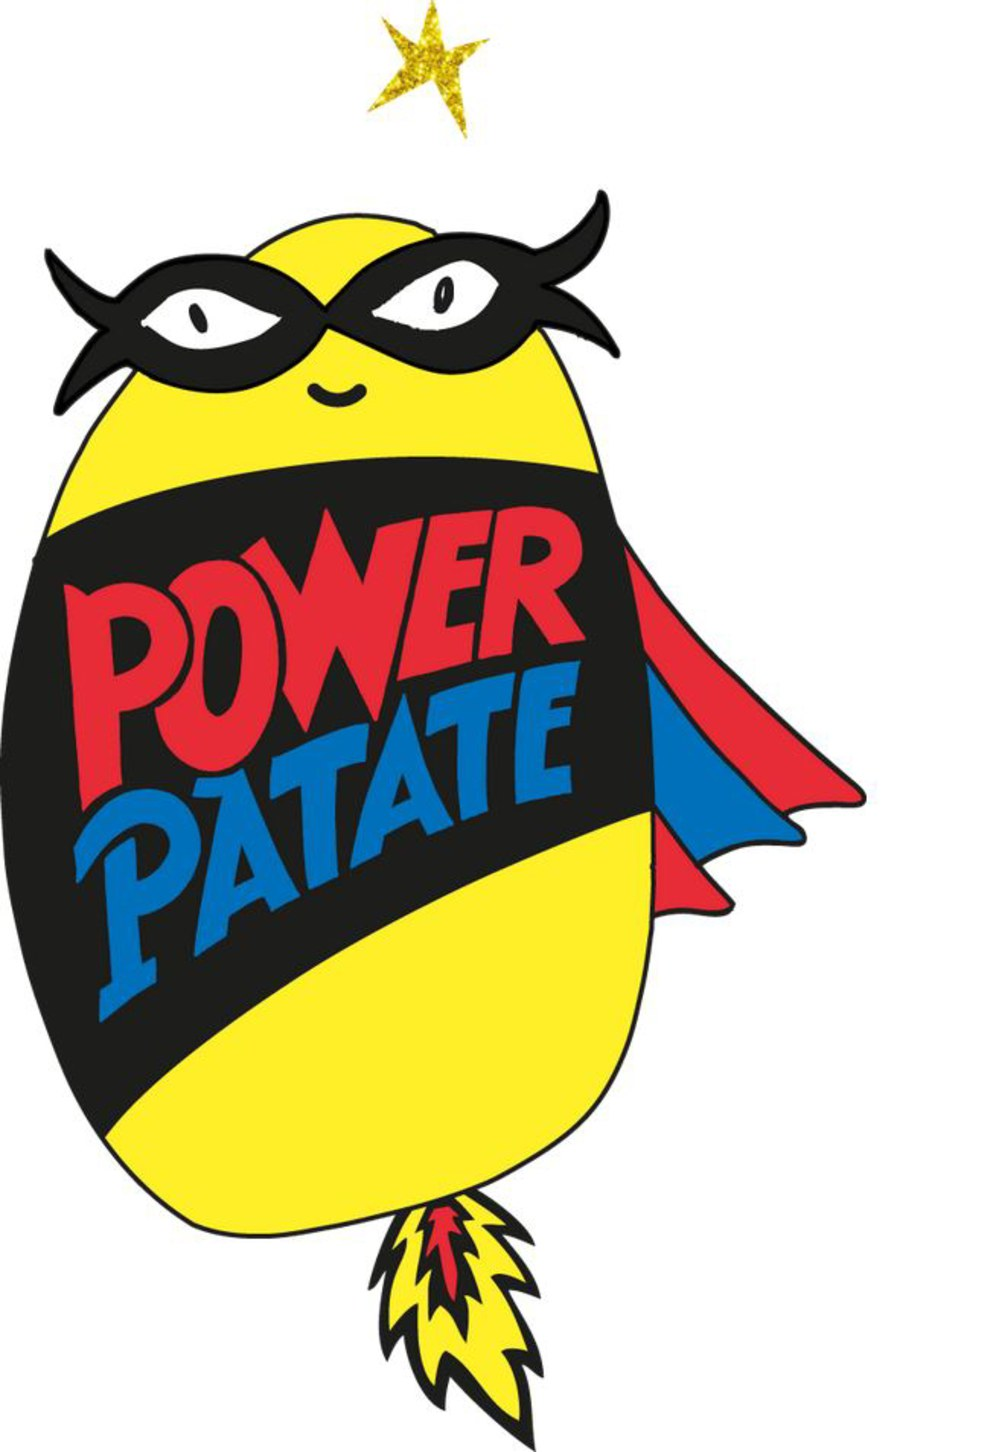 https://static.blog4ever.com/2012/11/720911/power-patate-174506_w1000.jpg